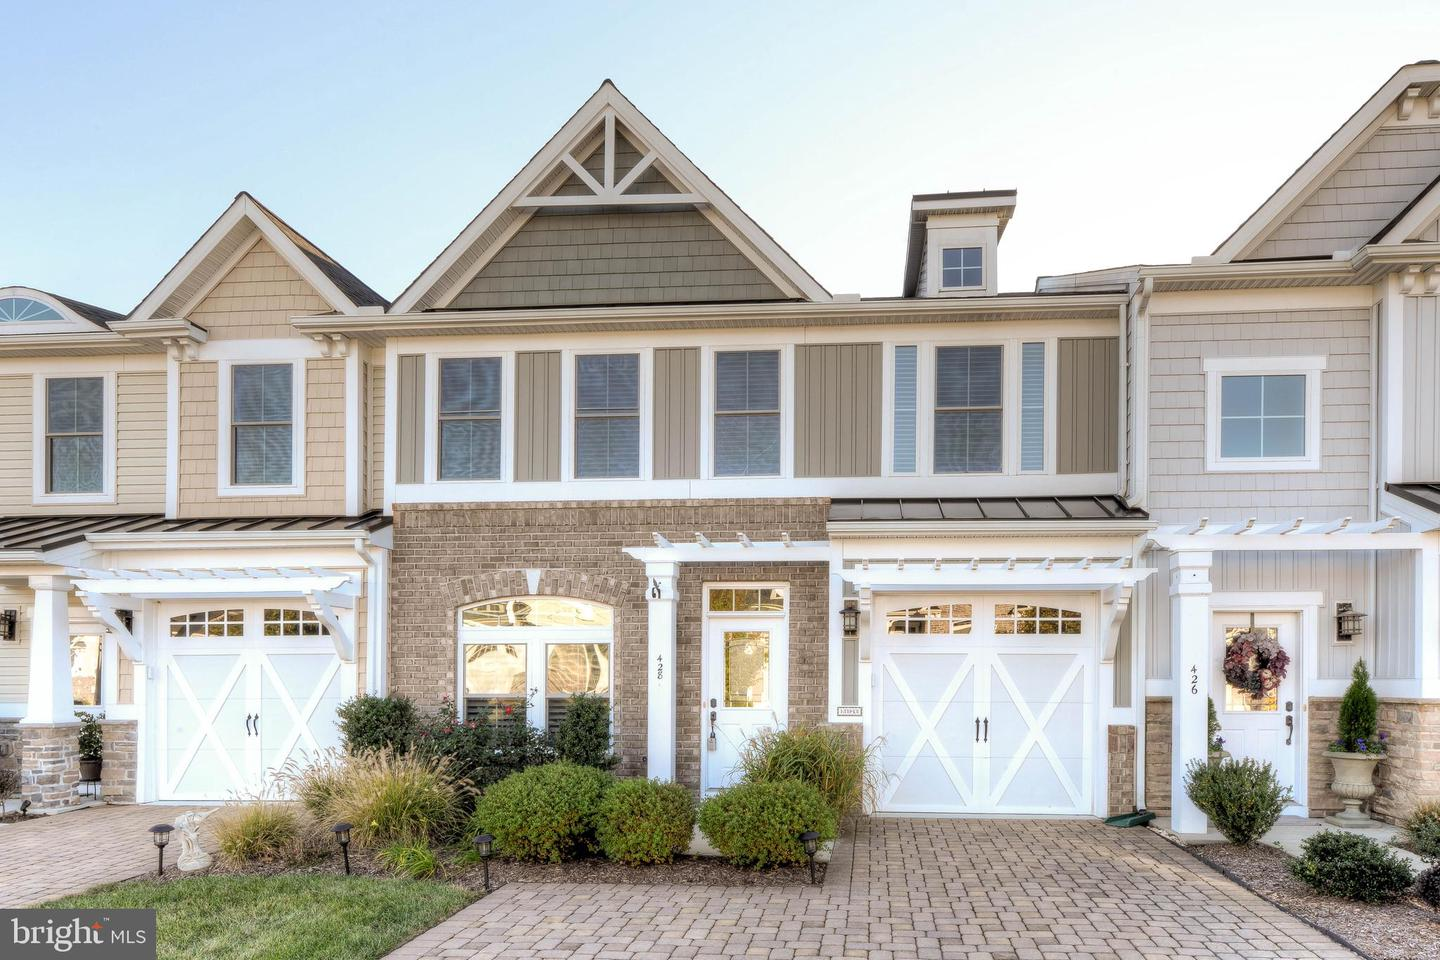 DESU146264-302134294754-2019-10-24-14-04-03 Rehoboth ranked No. 2 for Happiest Seaside Town - Jack Lingo REALTOR